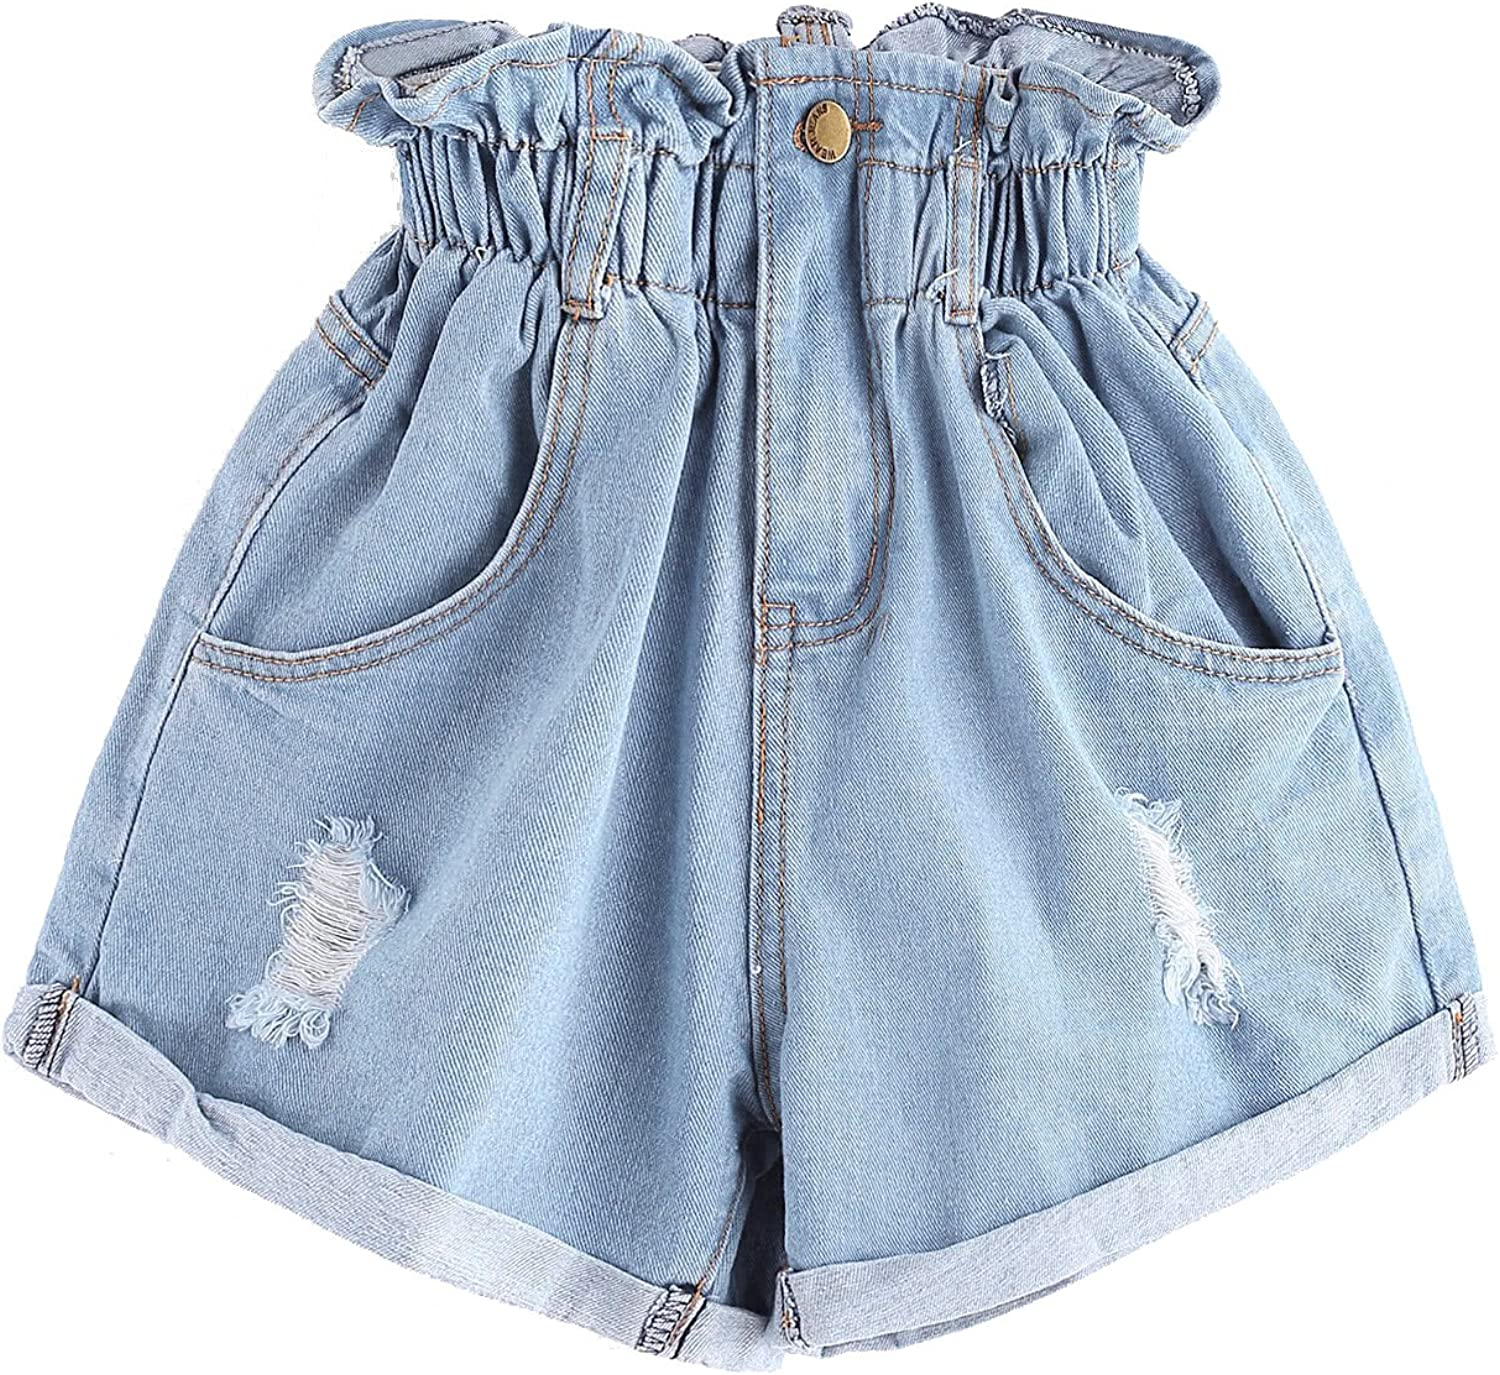 Milumia Women's Casual High Waisted Hemming Denim Jean Shorts with Pockets